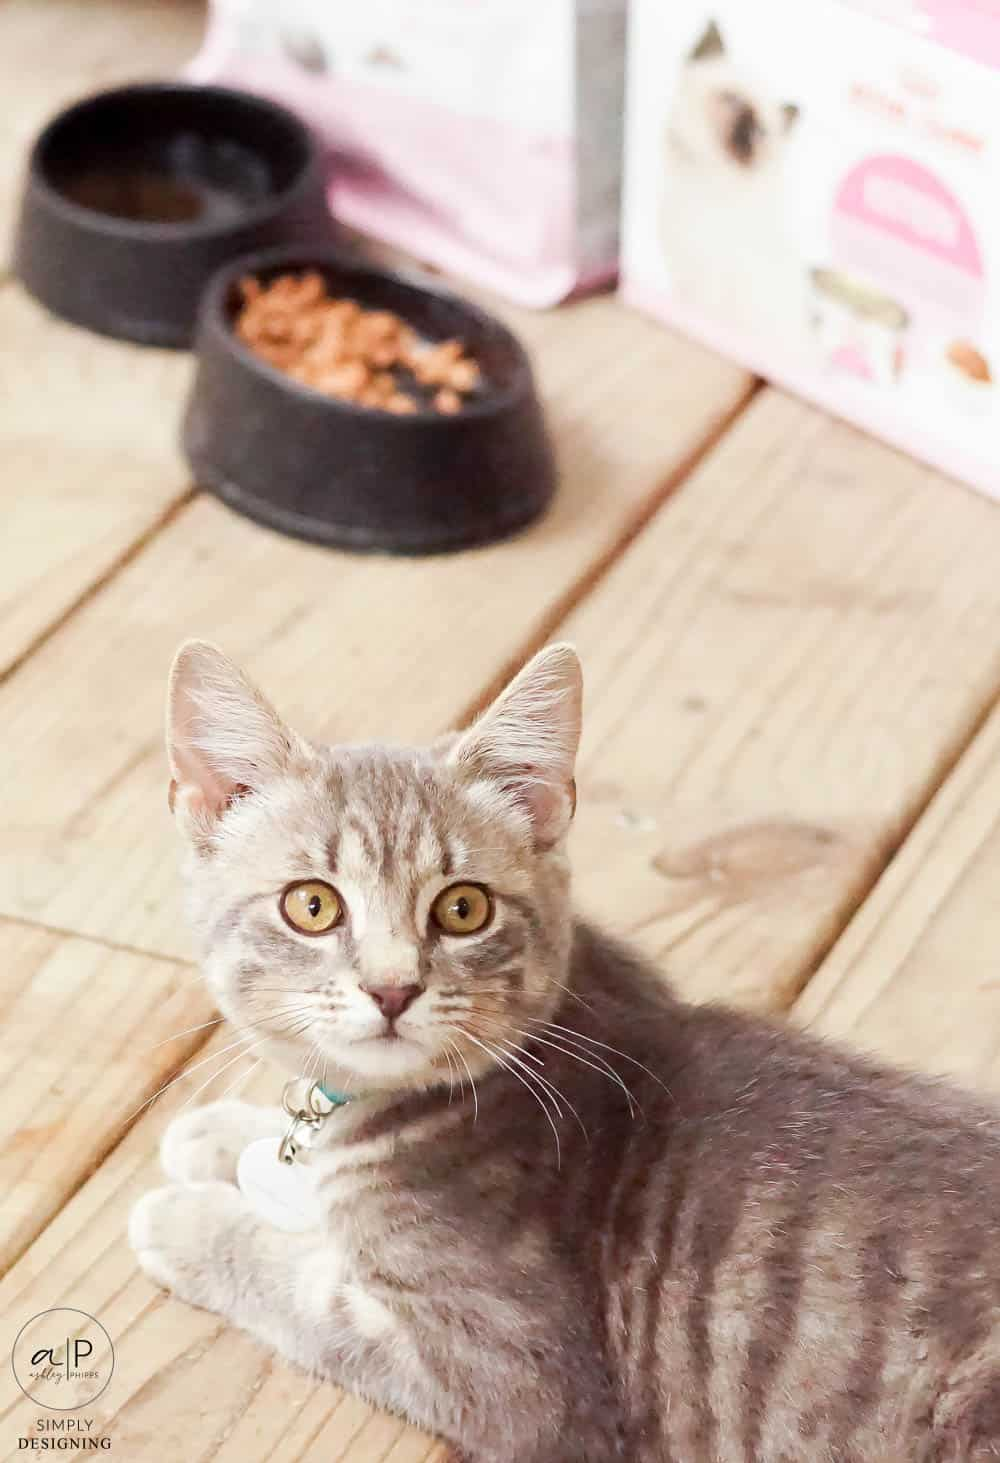 cat looking up at camera with food in the background